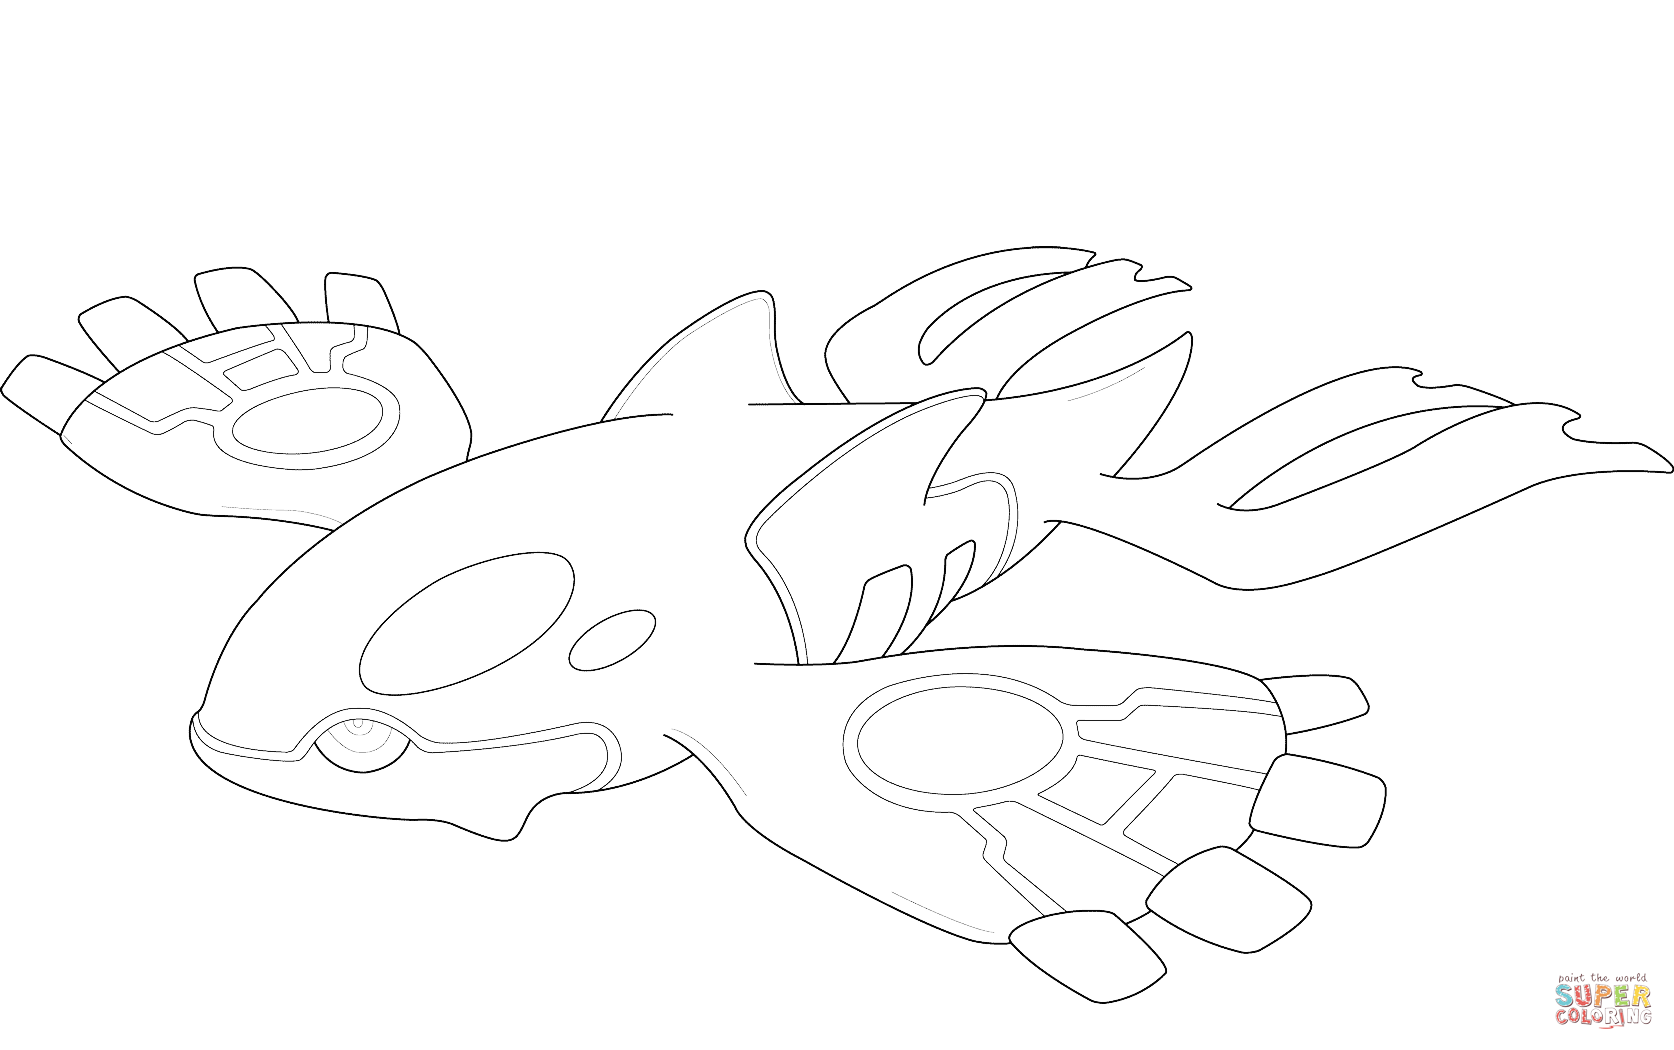 Coloring pages pokemon easy - Kyogre Pokemon Coloring Page Free Printable Coloring Pages